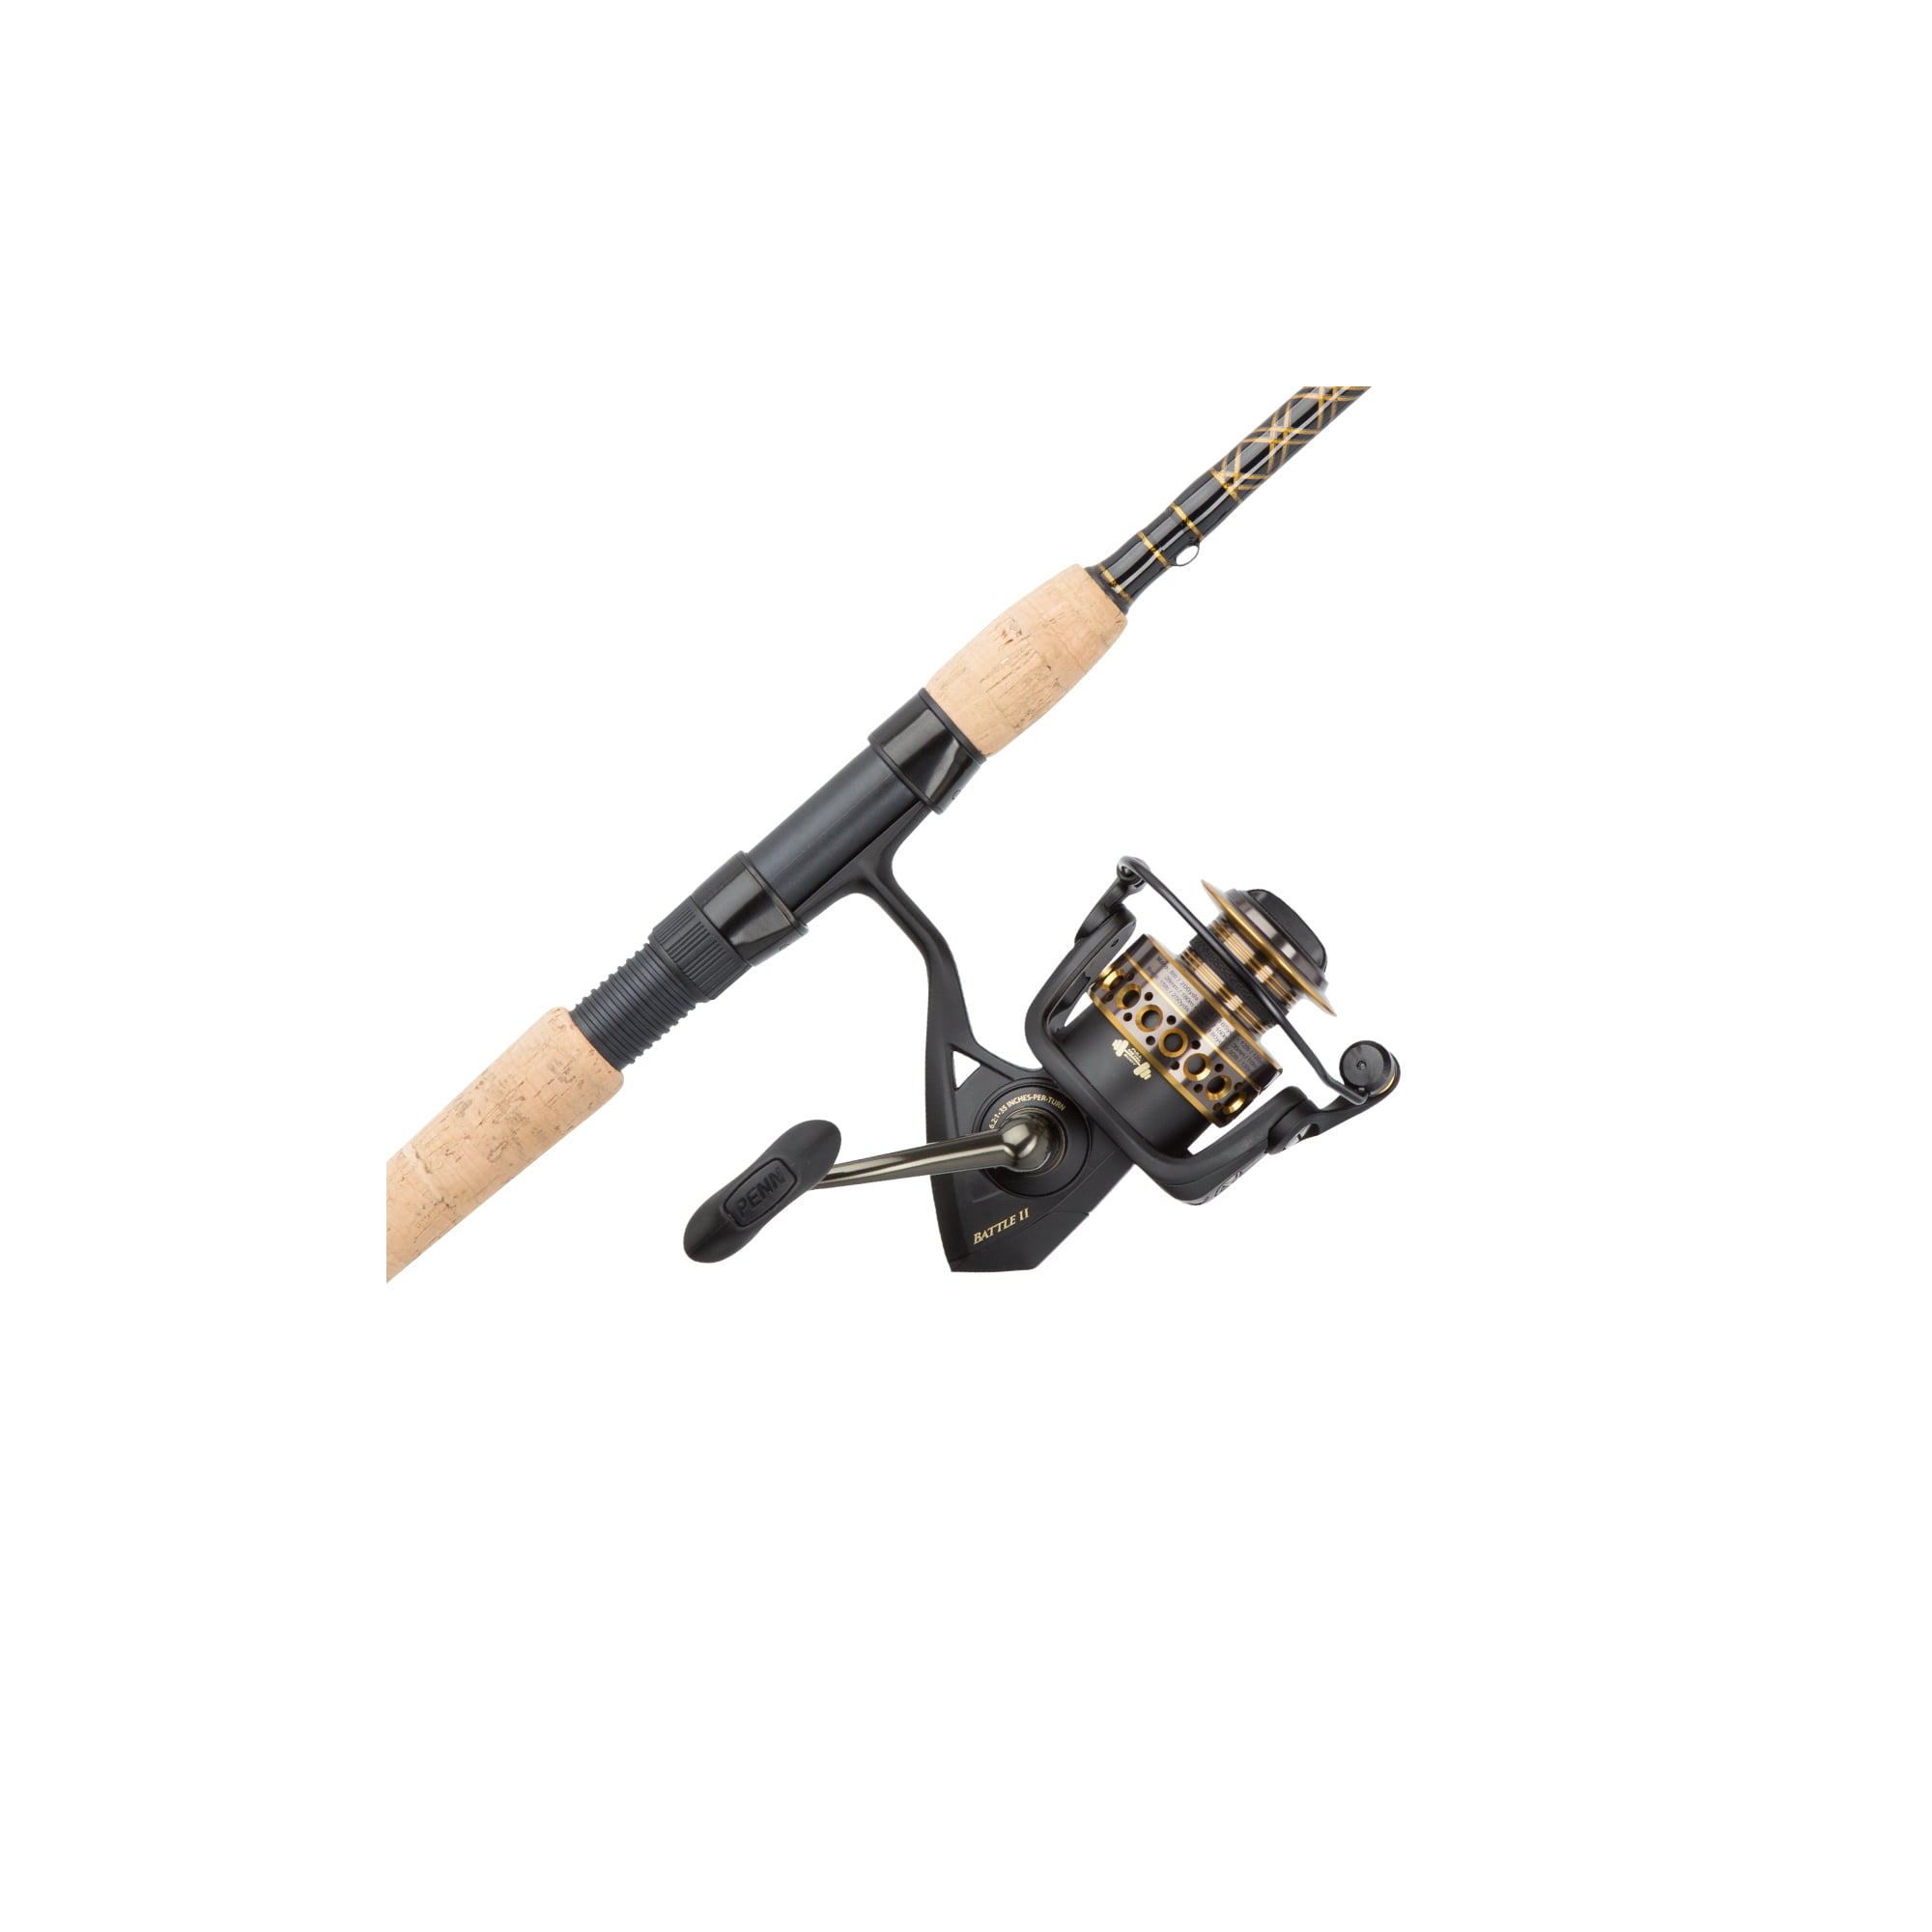 Penn Battle II Spinning Reel and Fishing Rod Combo by Penn